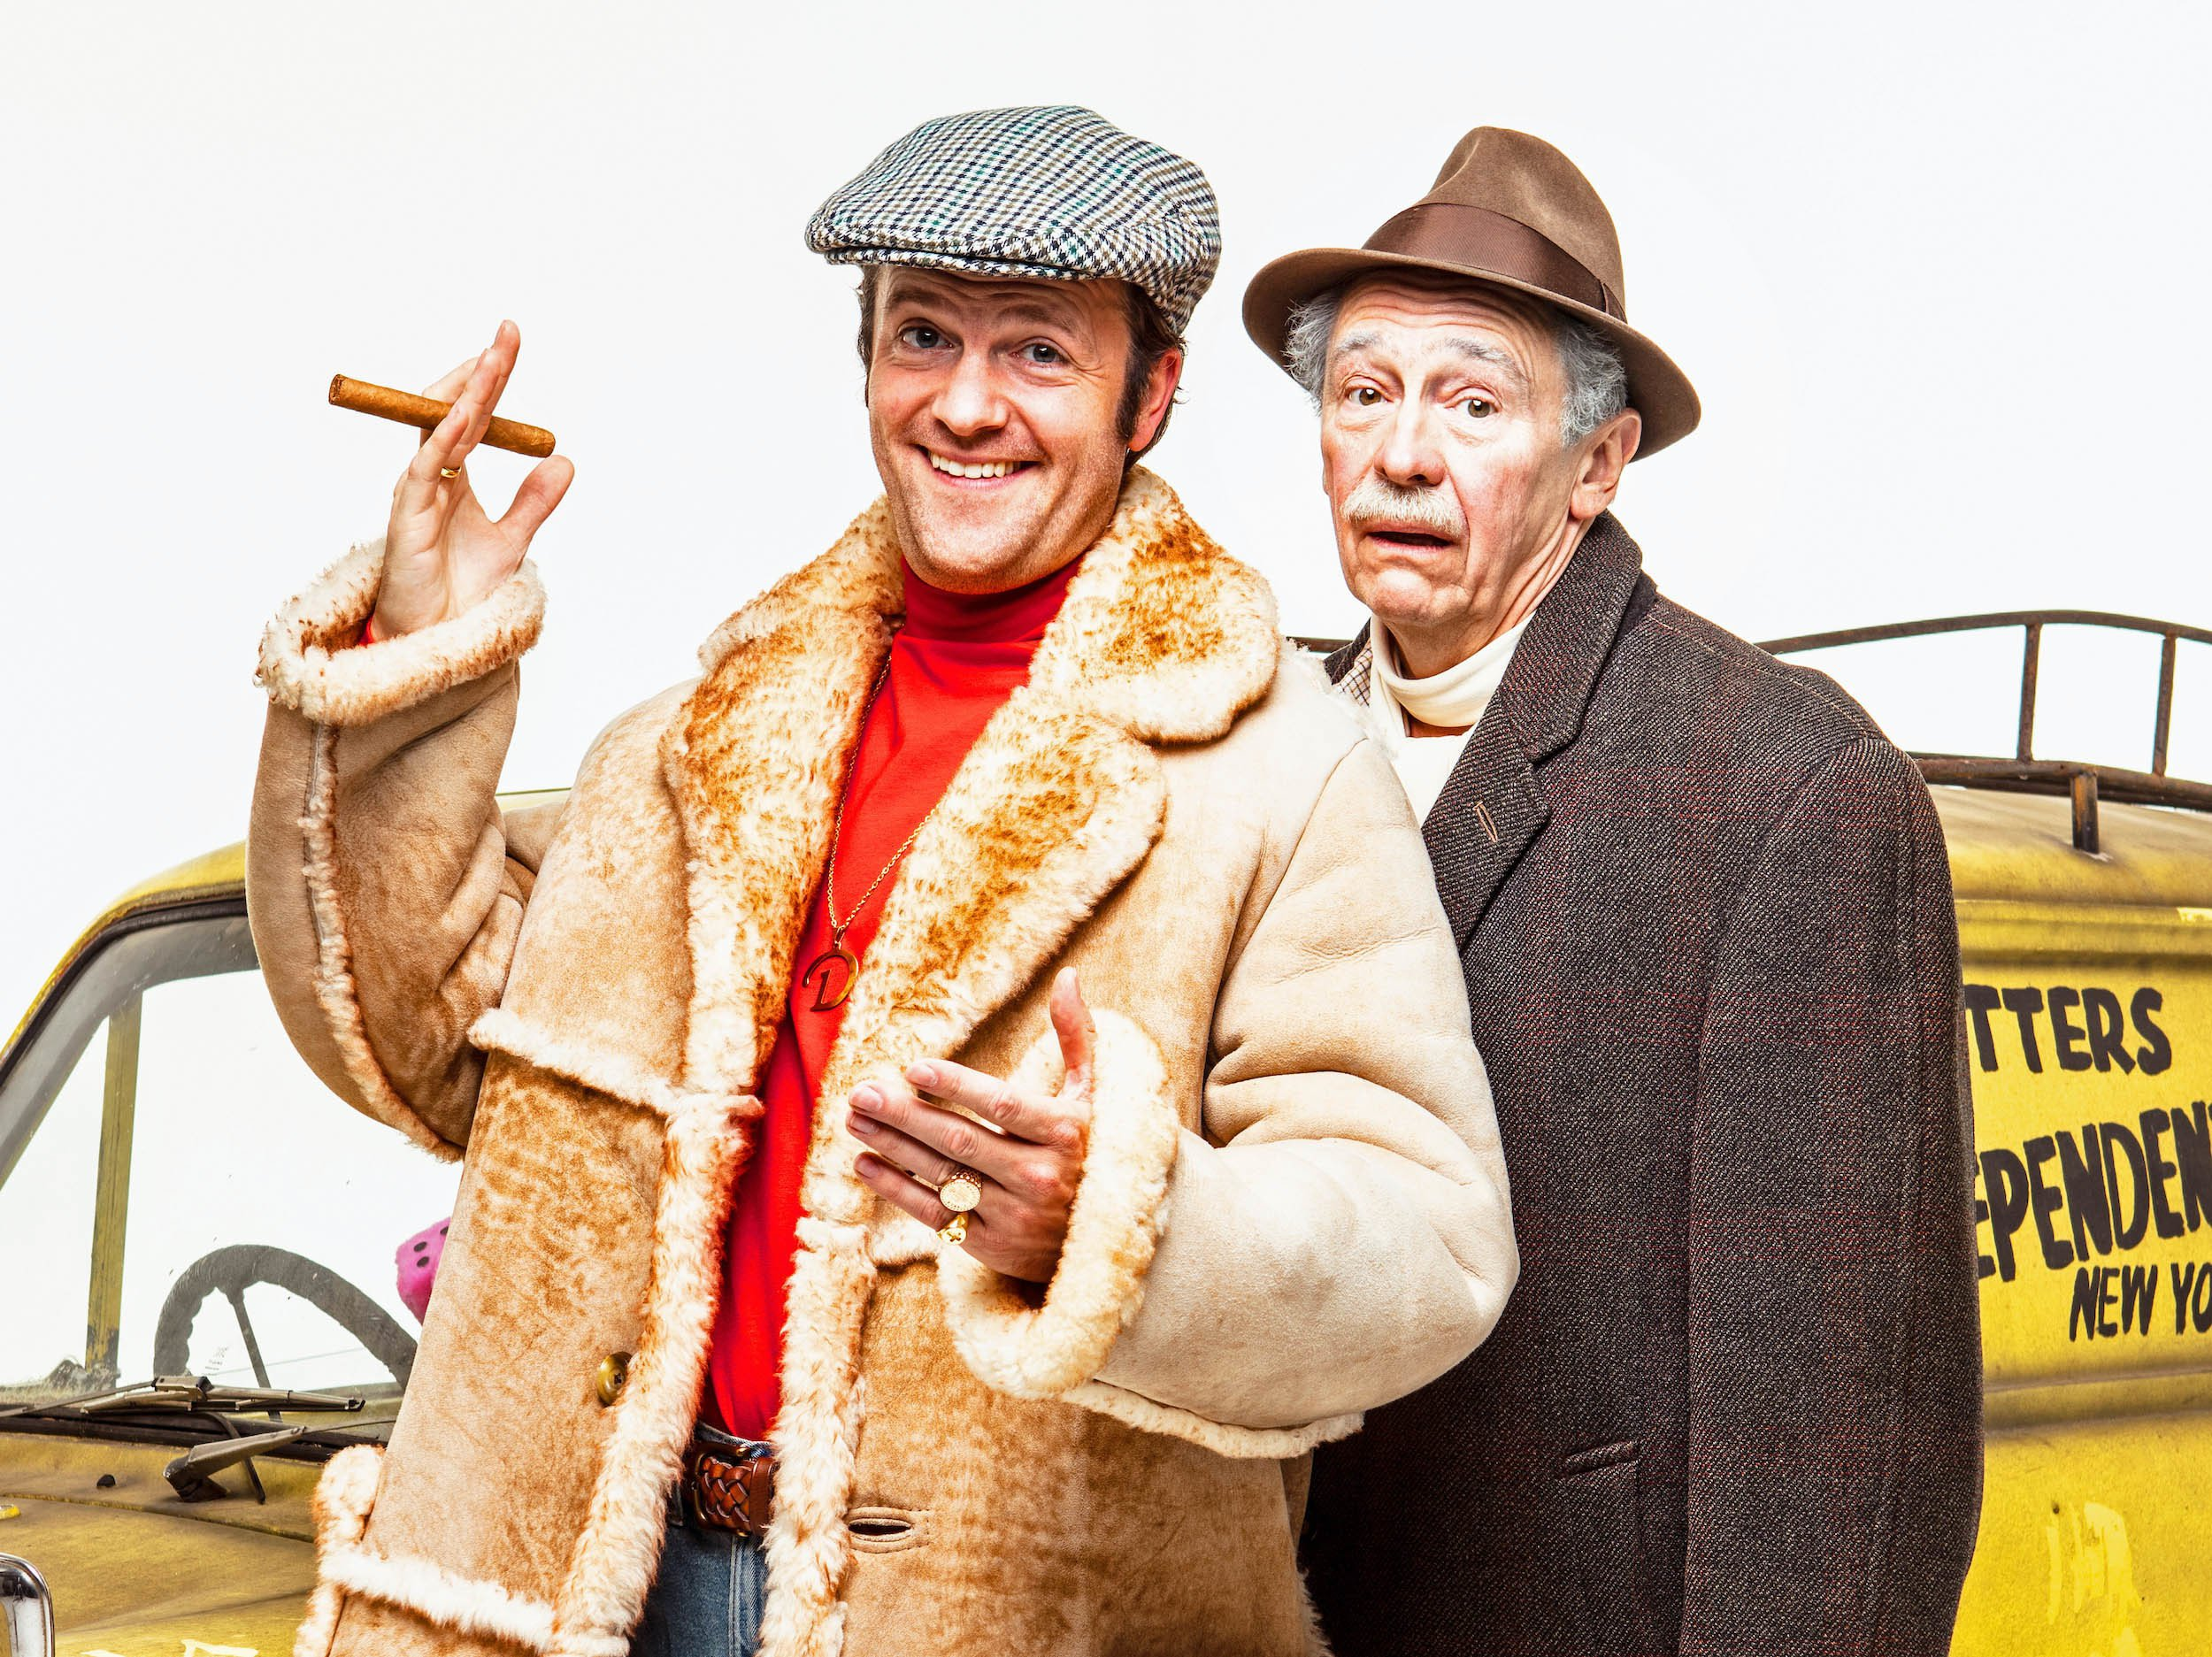 "Undated handout photo of Tom Bennett as Del Boy (left) and Paul Whitehouse as Grandad, who will star in a musical version of Only Fools And Horses, which has been created to honour the ""delicate legacy"" of its deceased writer John Sullivan, with songs from the late Chas Hodges. PRESS ASSOCIATION Photo. Issue date: Monday October 8, 2018. The creator of the long-running sitcom died aged 64 in 2011, before work on a musical retelling of the Trotter's misadventures could be completed. See PA story SHOWBIZ Horses. Photo credit should read: Trevor Leighton/PME/PA Wire NOTE TO EDITORS: This handout photo may only be used in for editorial reporting purposes for the contemporaneous illustration of events, things or the people in the image or facts mentioned in the caption. Reuse of the picture may require further permission from the copyright holder."